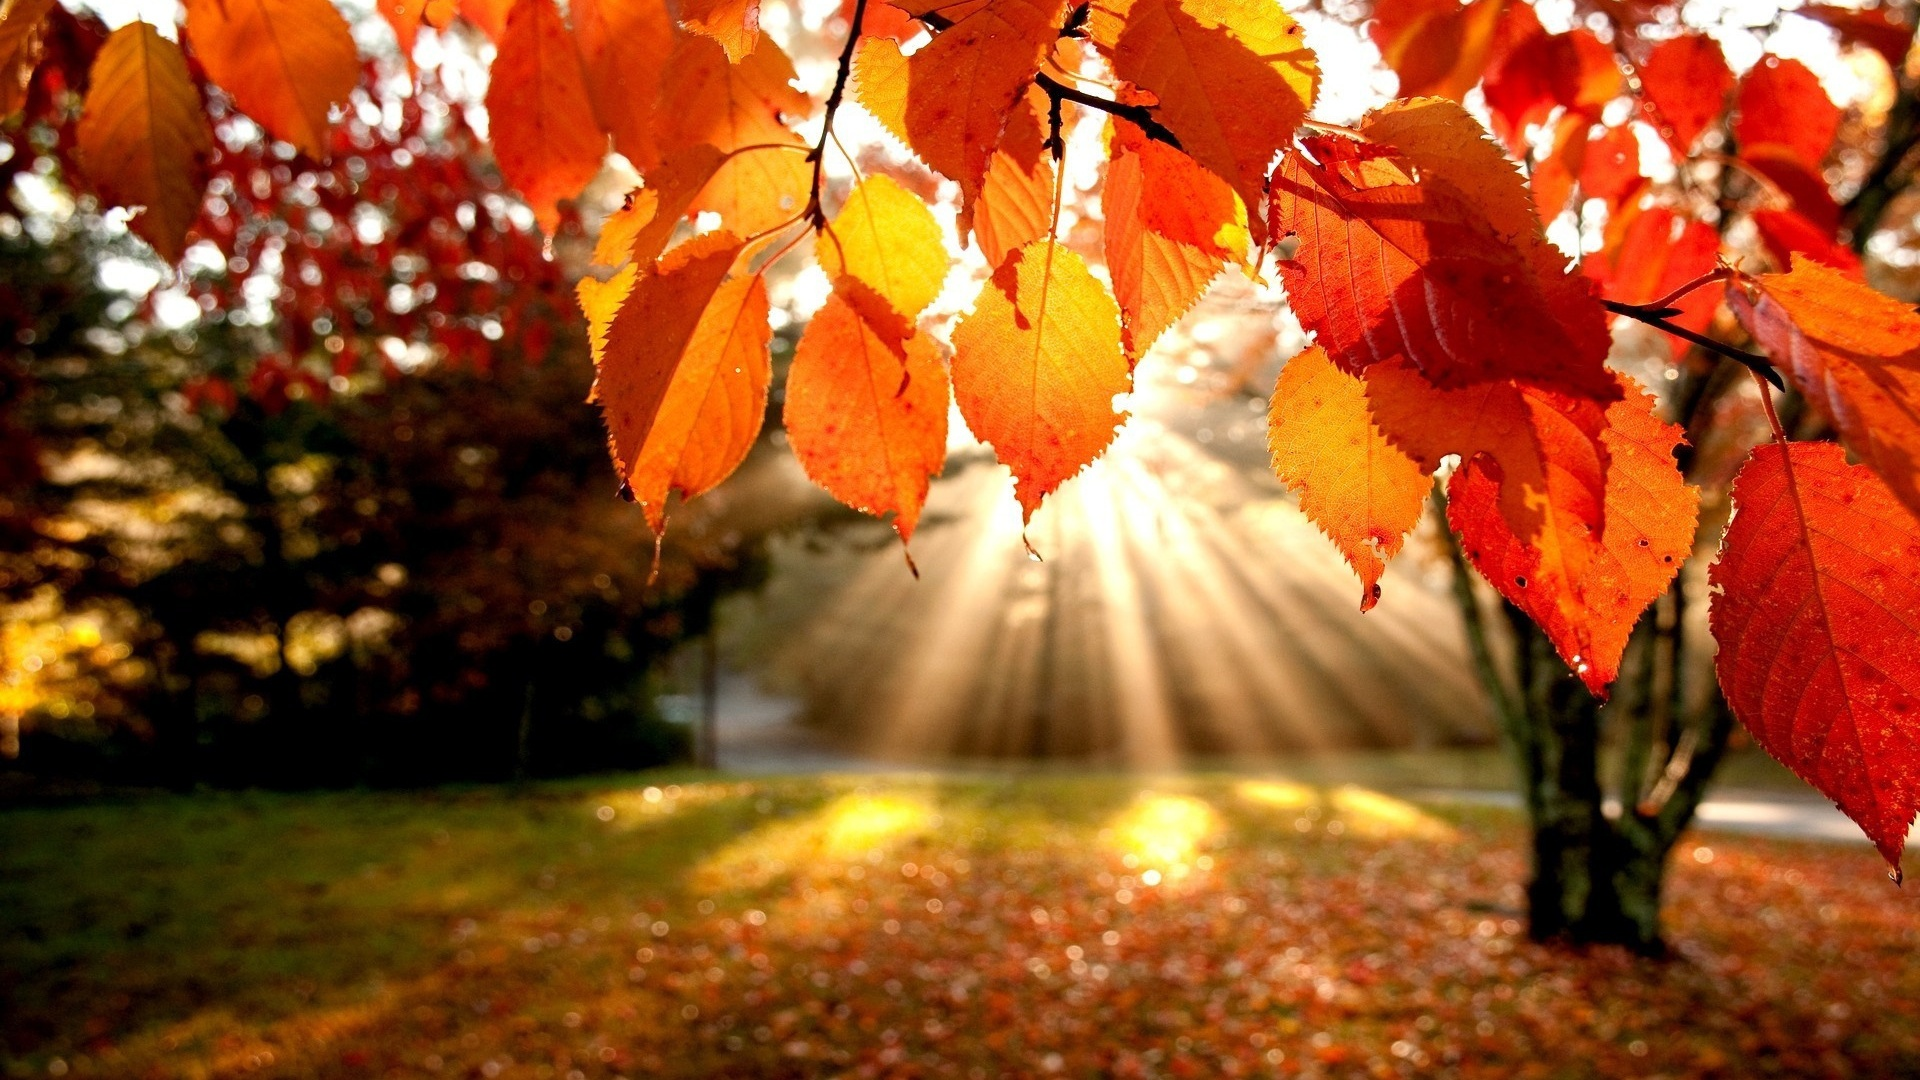 10+ images about Autumn on Pinterest | Autumn desktop wallpaper